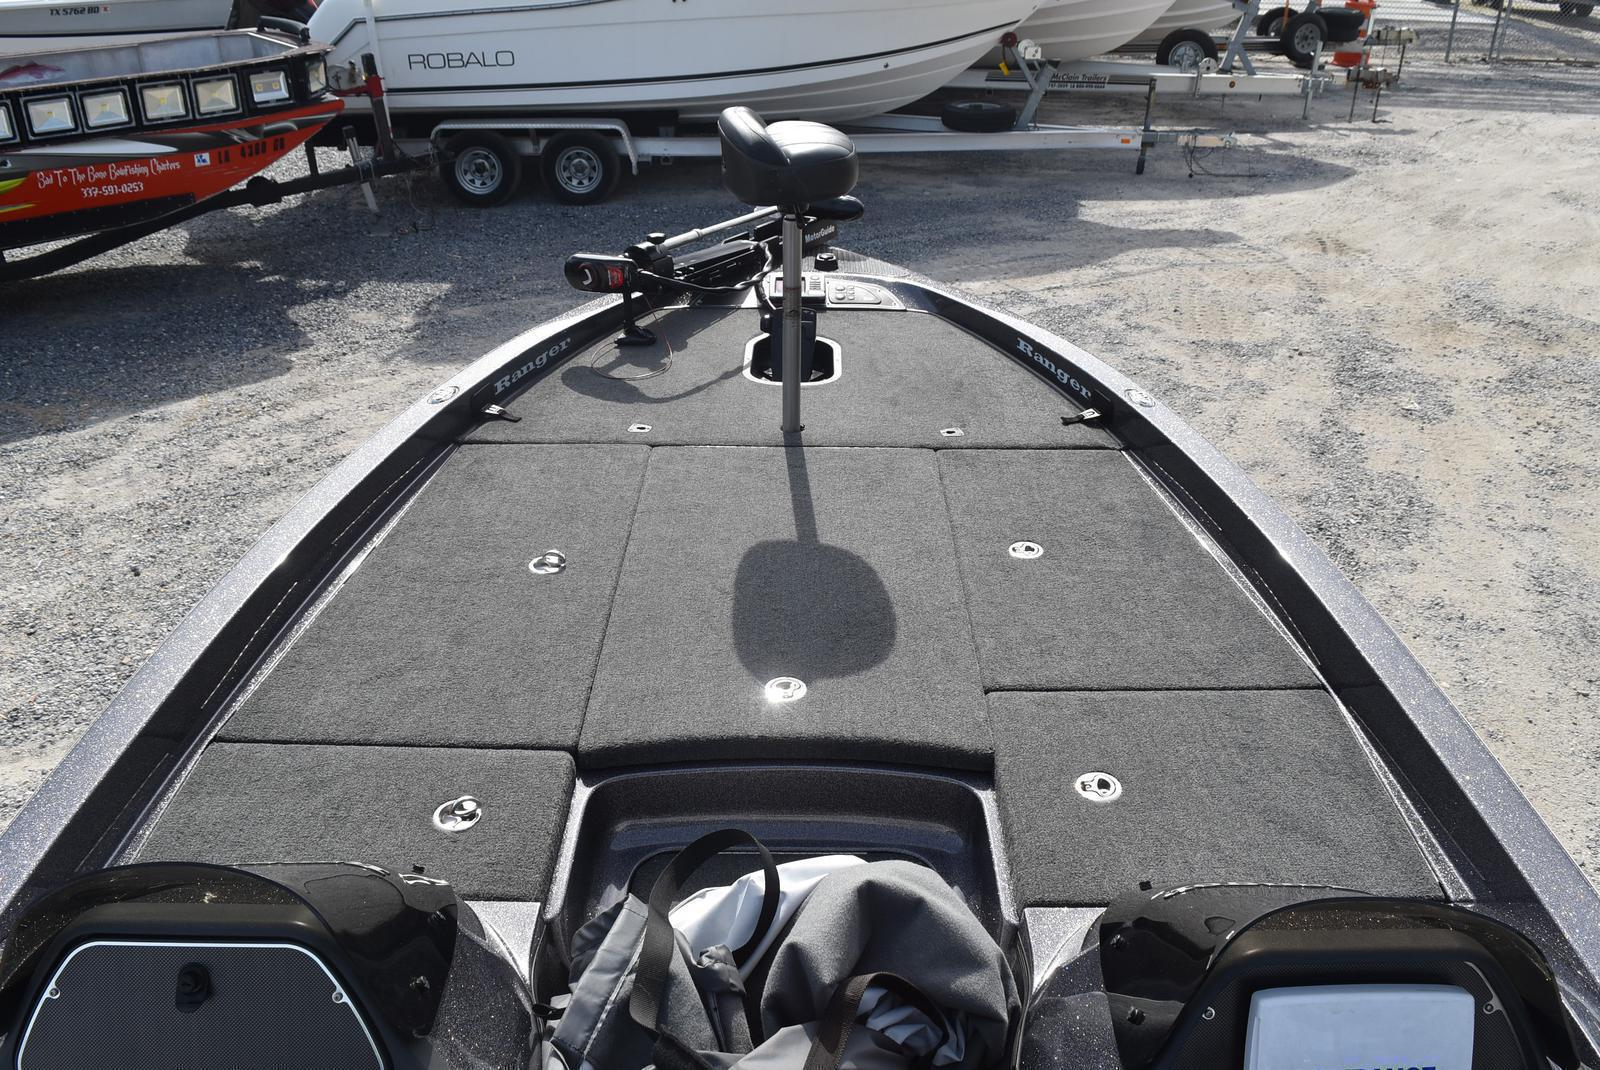 2010 Ranger Boats boat for sale, model of the boat is Z521 Comanche & Image # 22 of 35